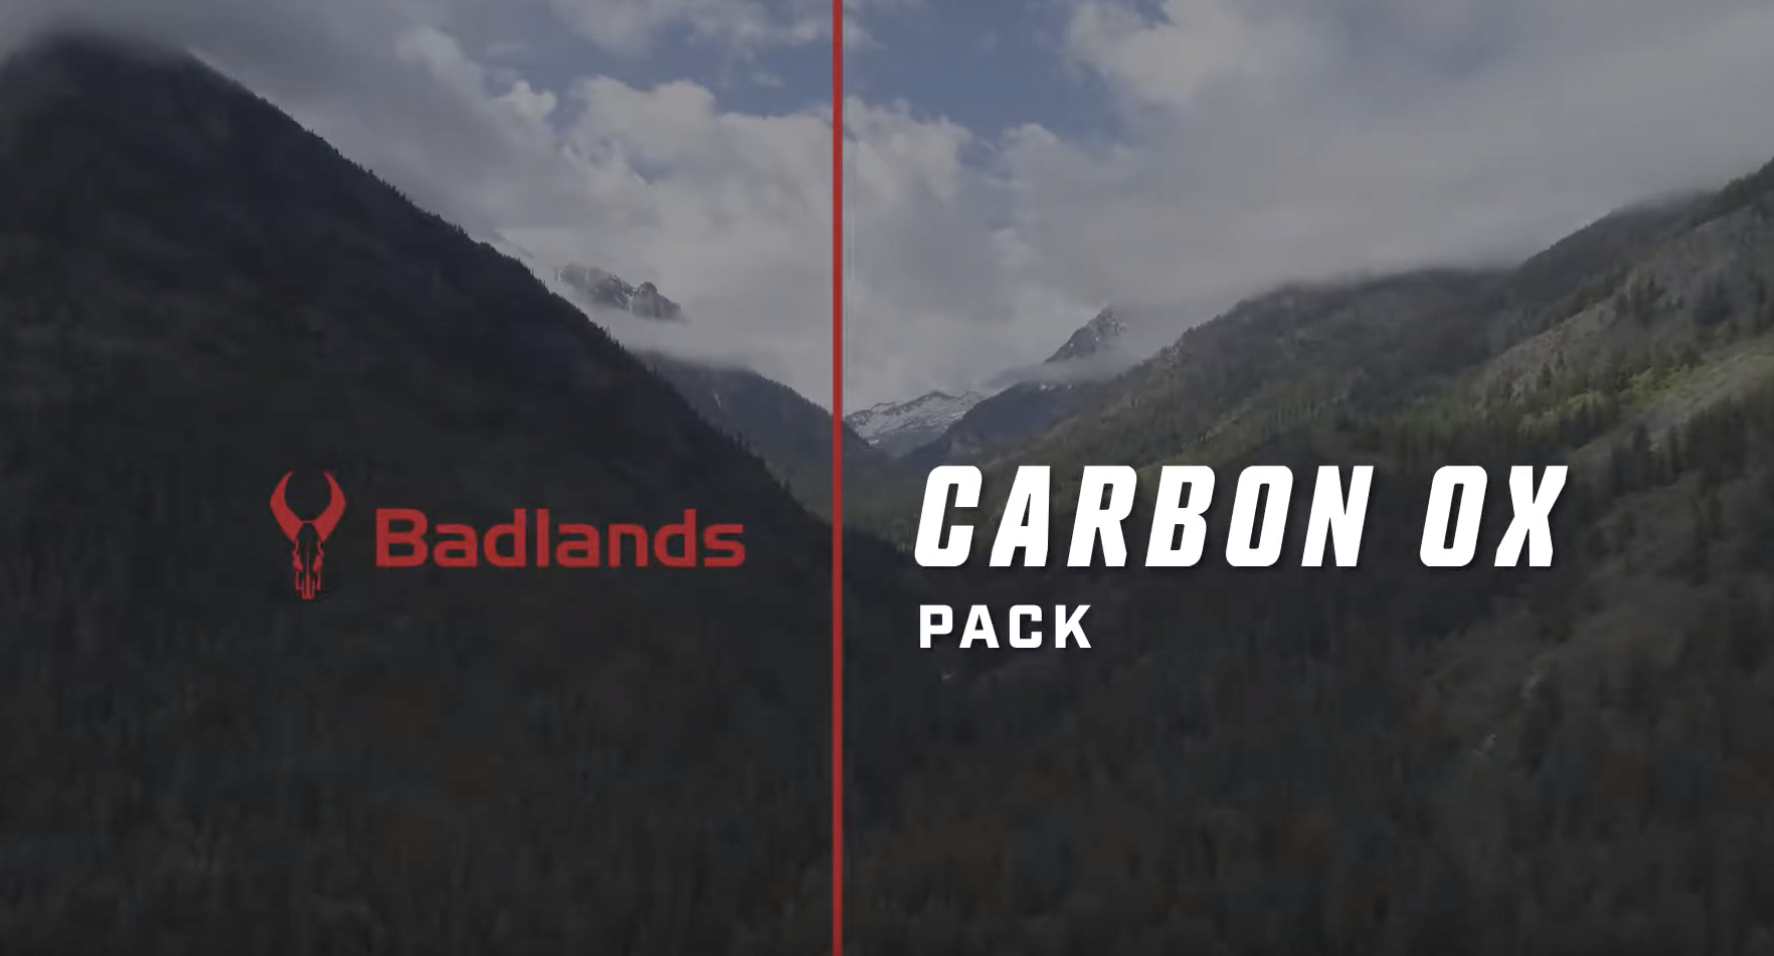 Learn more about the Carbon Ox Pack